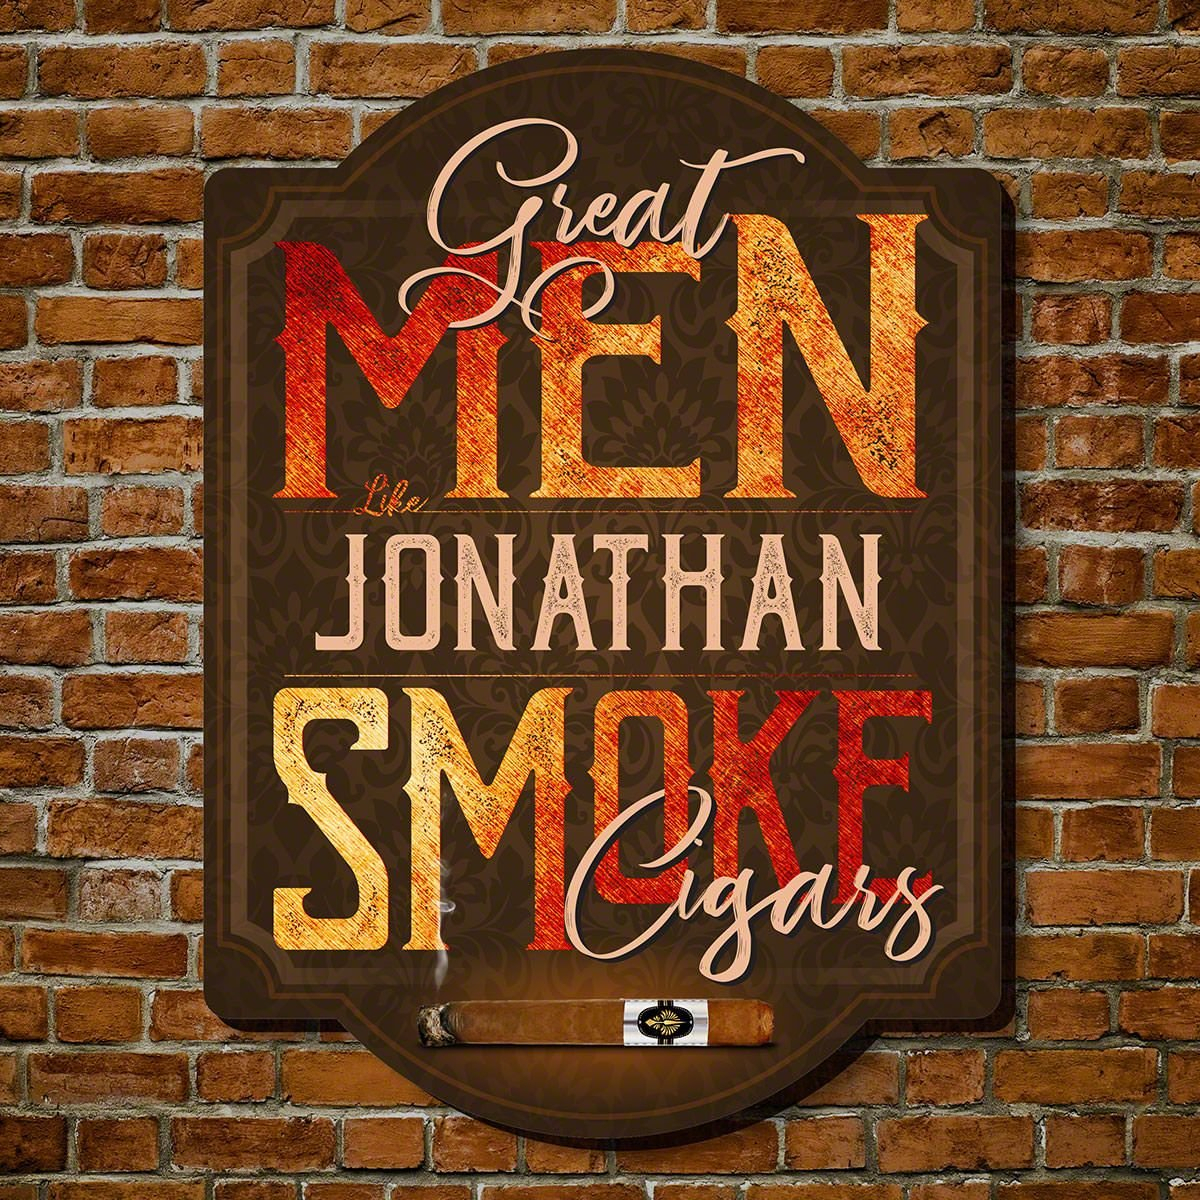 Faith, Hope, Love Raised Sign Wall Decor By Winston Porter In Most Recently Released Winston Porter Great Men Smoke Cigars Wooden Sign Wall Décor (View 11 of 20)